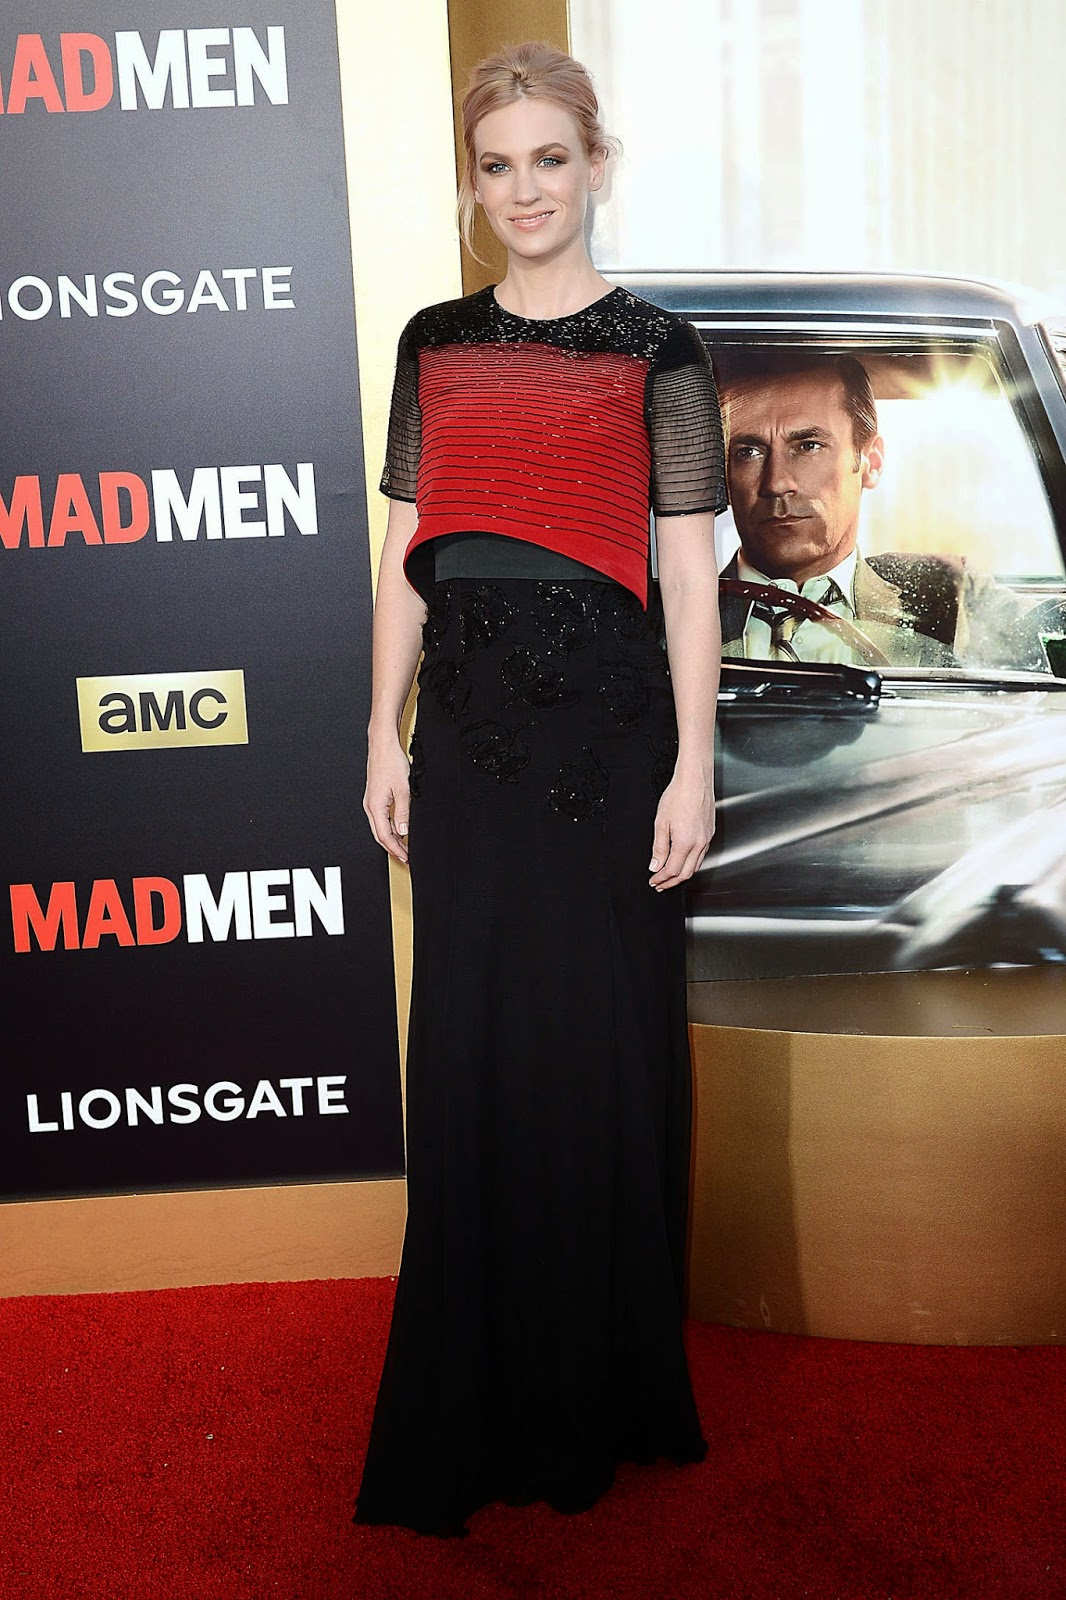 January Jones in Prabal Gurung at the AMC 'Mad Men' Black and Red Ball in LA